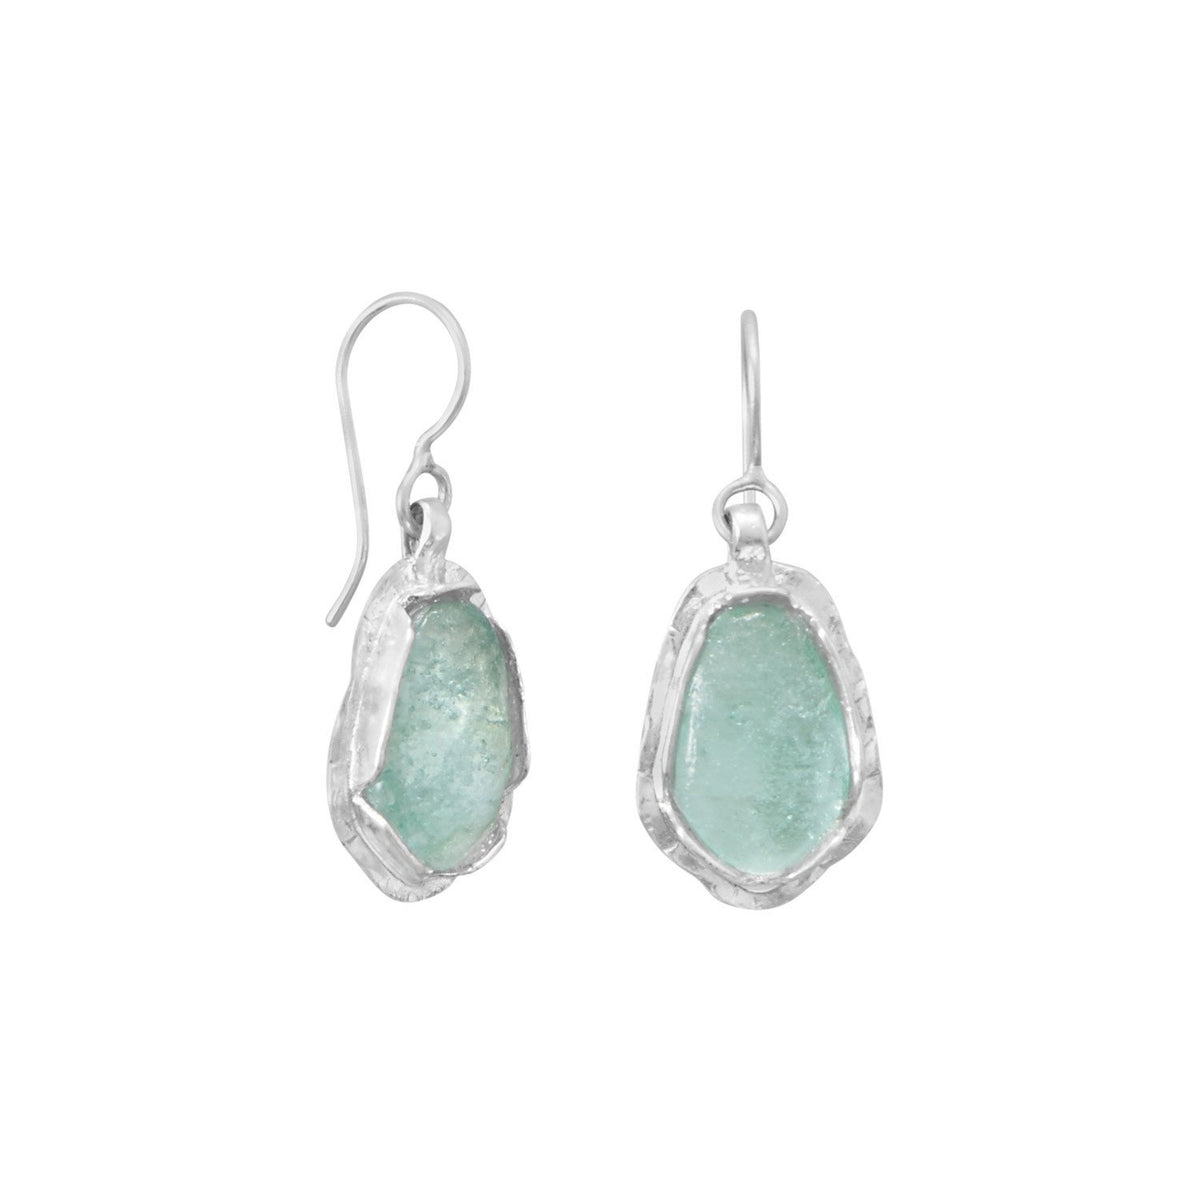 Polished Pear Ancient Roman Glass Drop Earrings